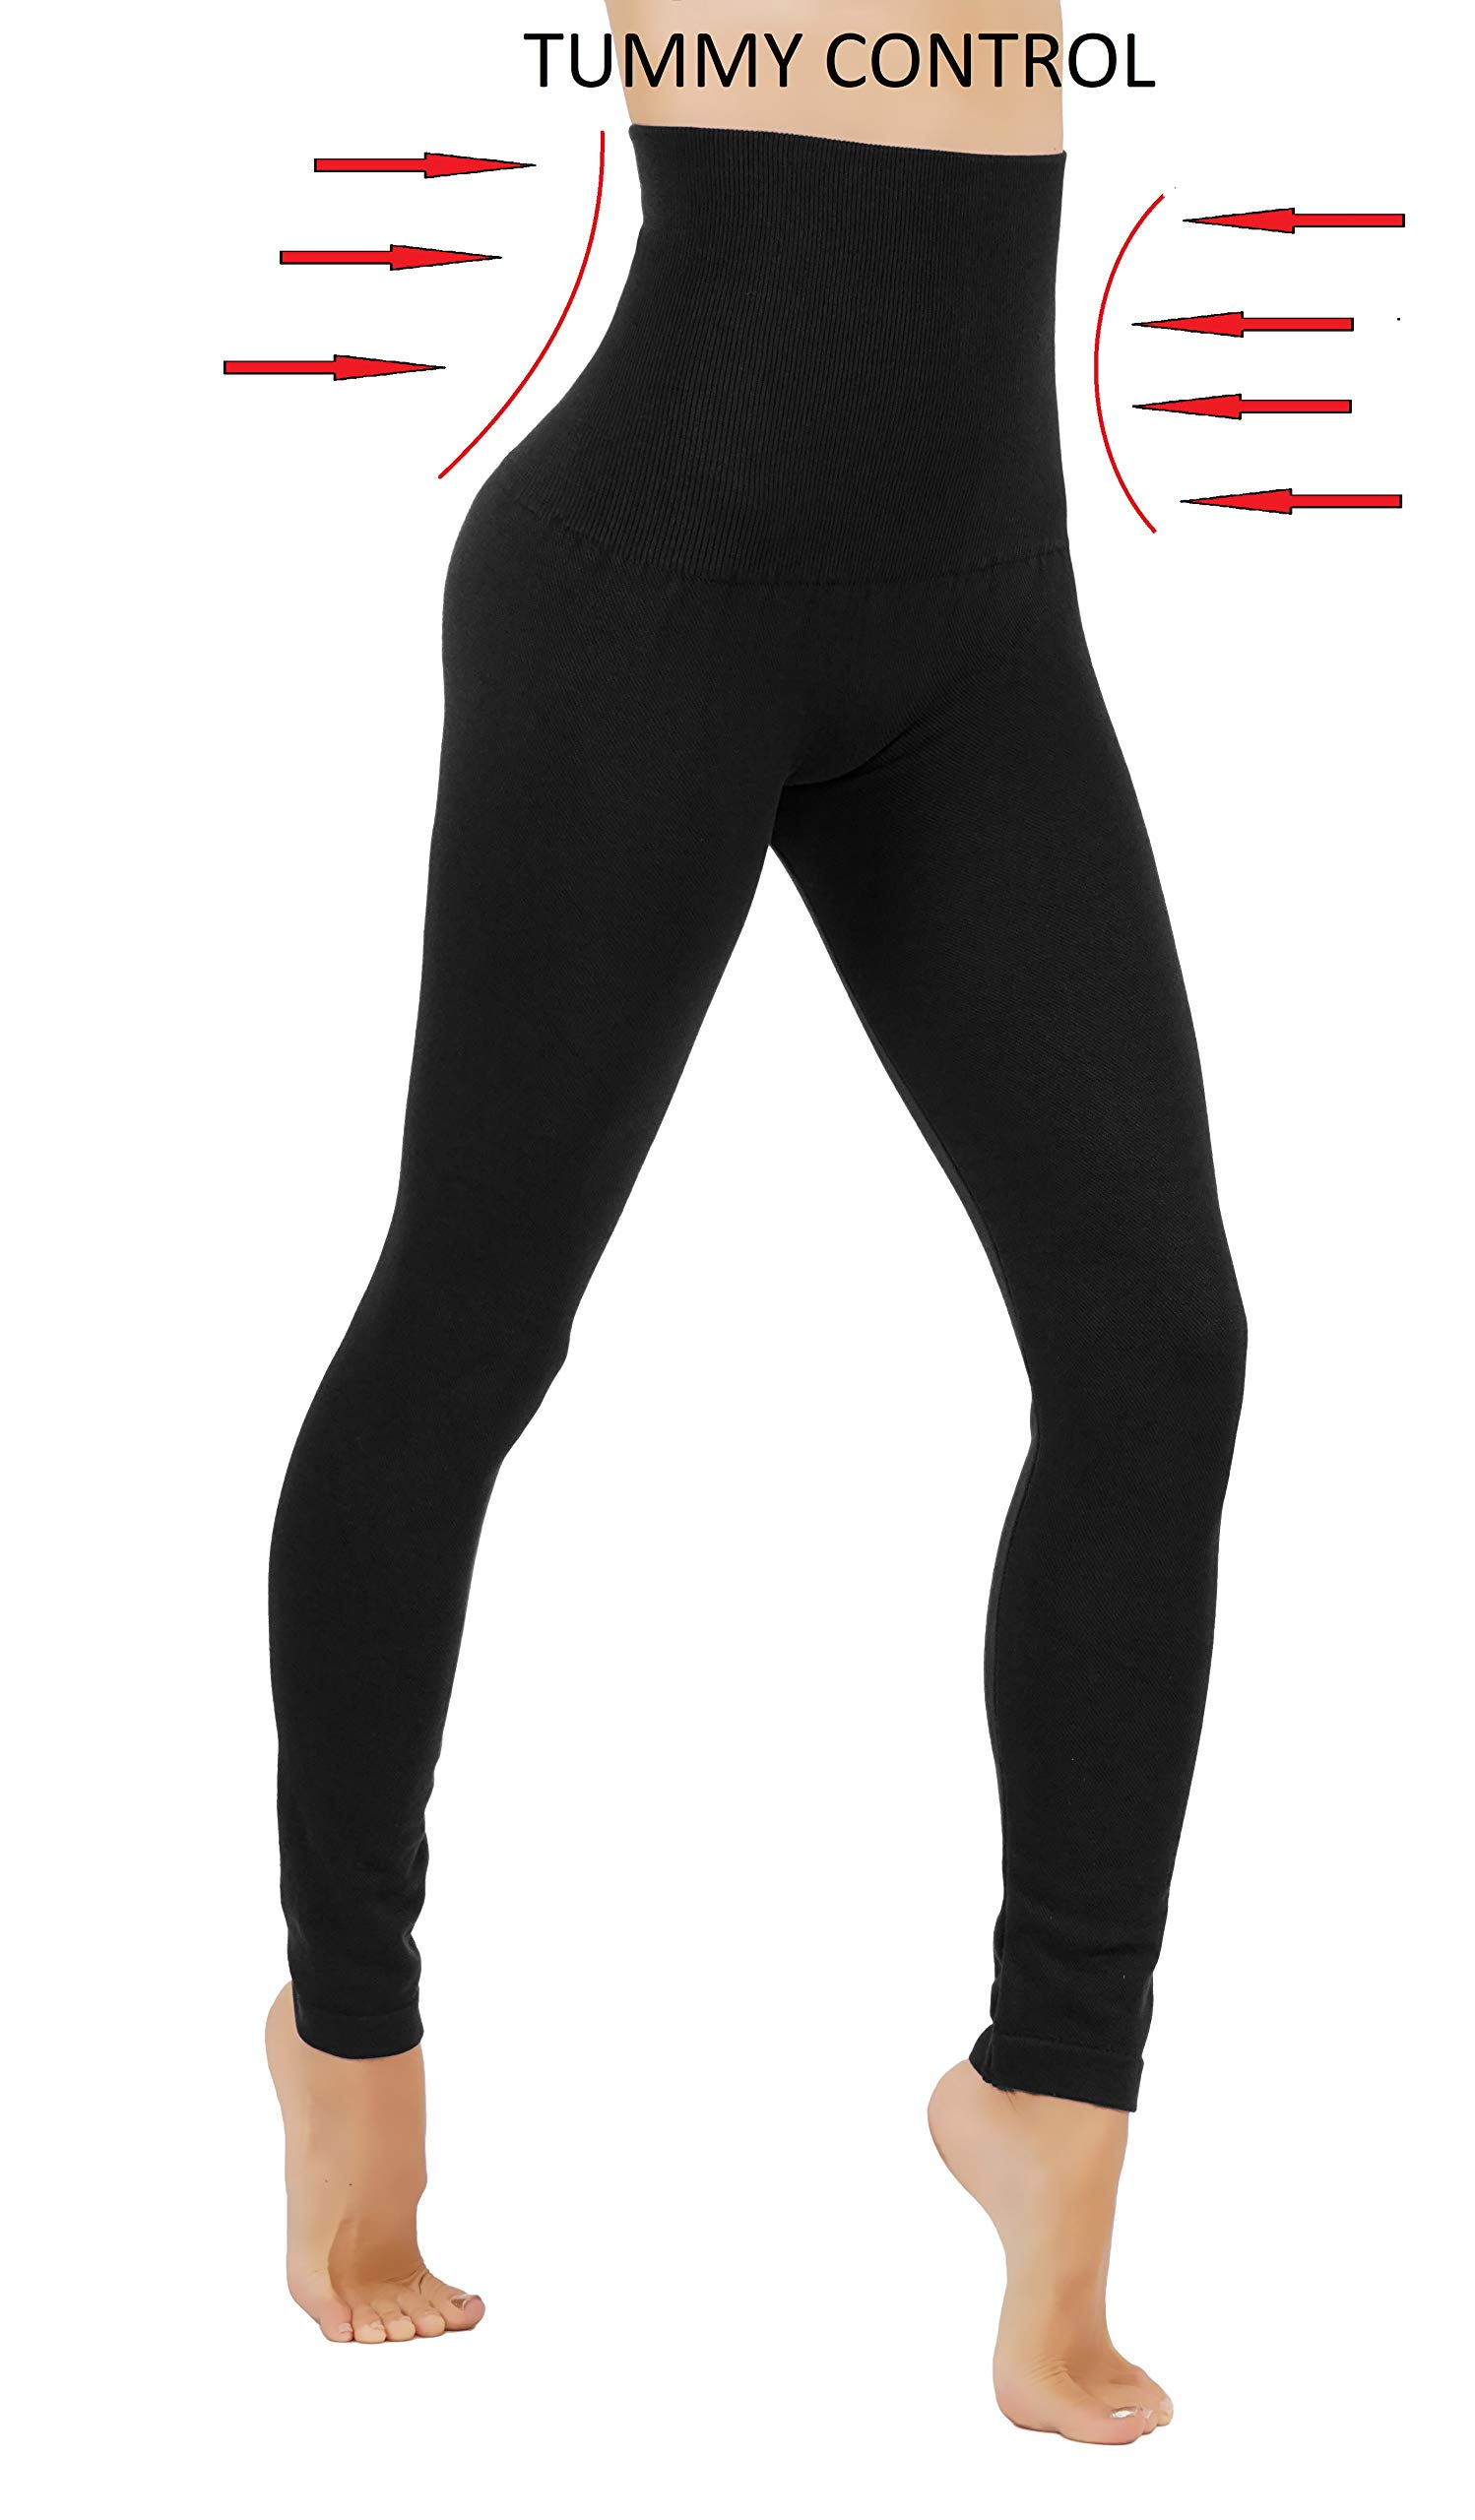 Premium Tummy Control High Waist Slimming Thick Fleece/French Terry (L/XL US Size 8-14, FD48-BLK) by Fit Division (Image #1)